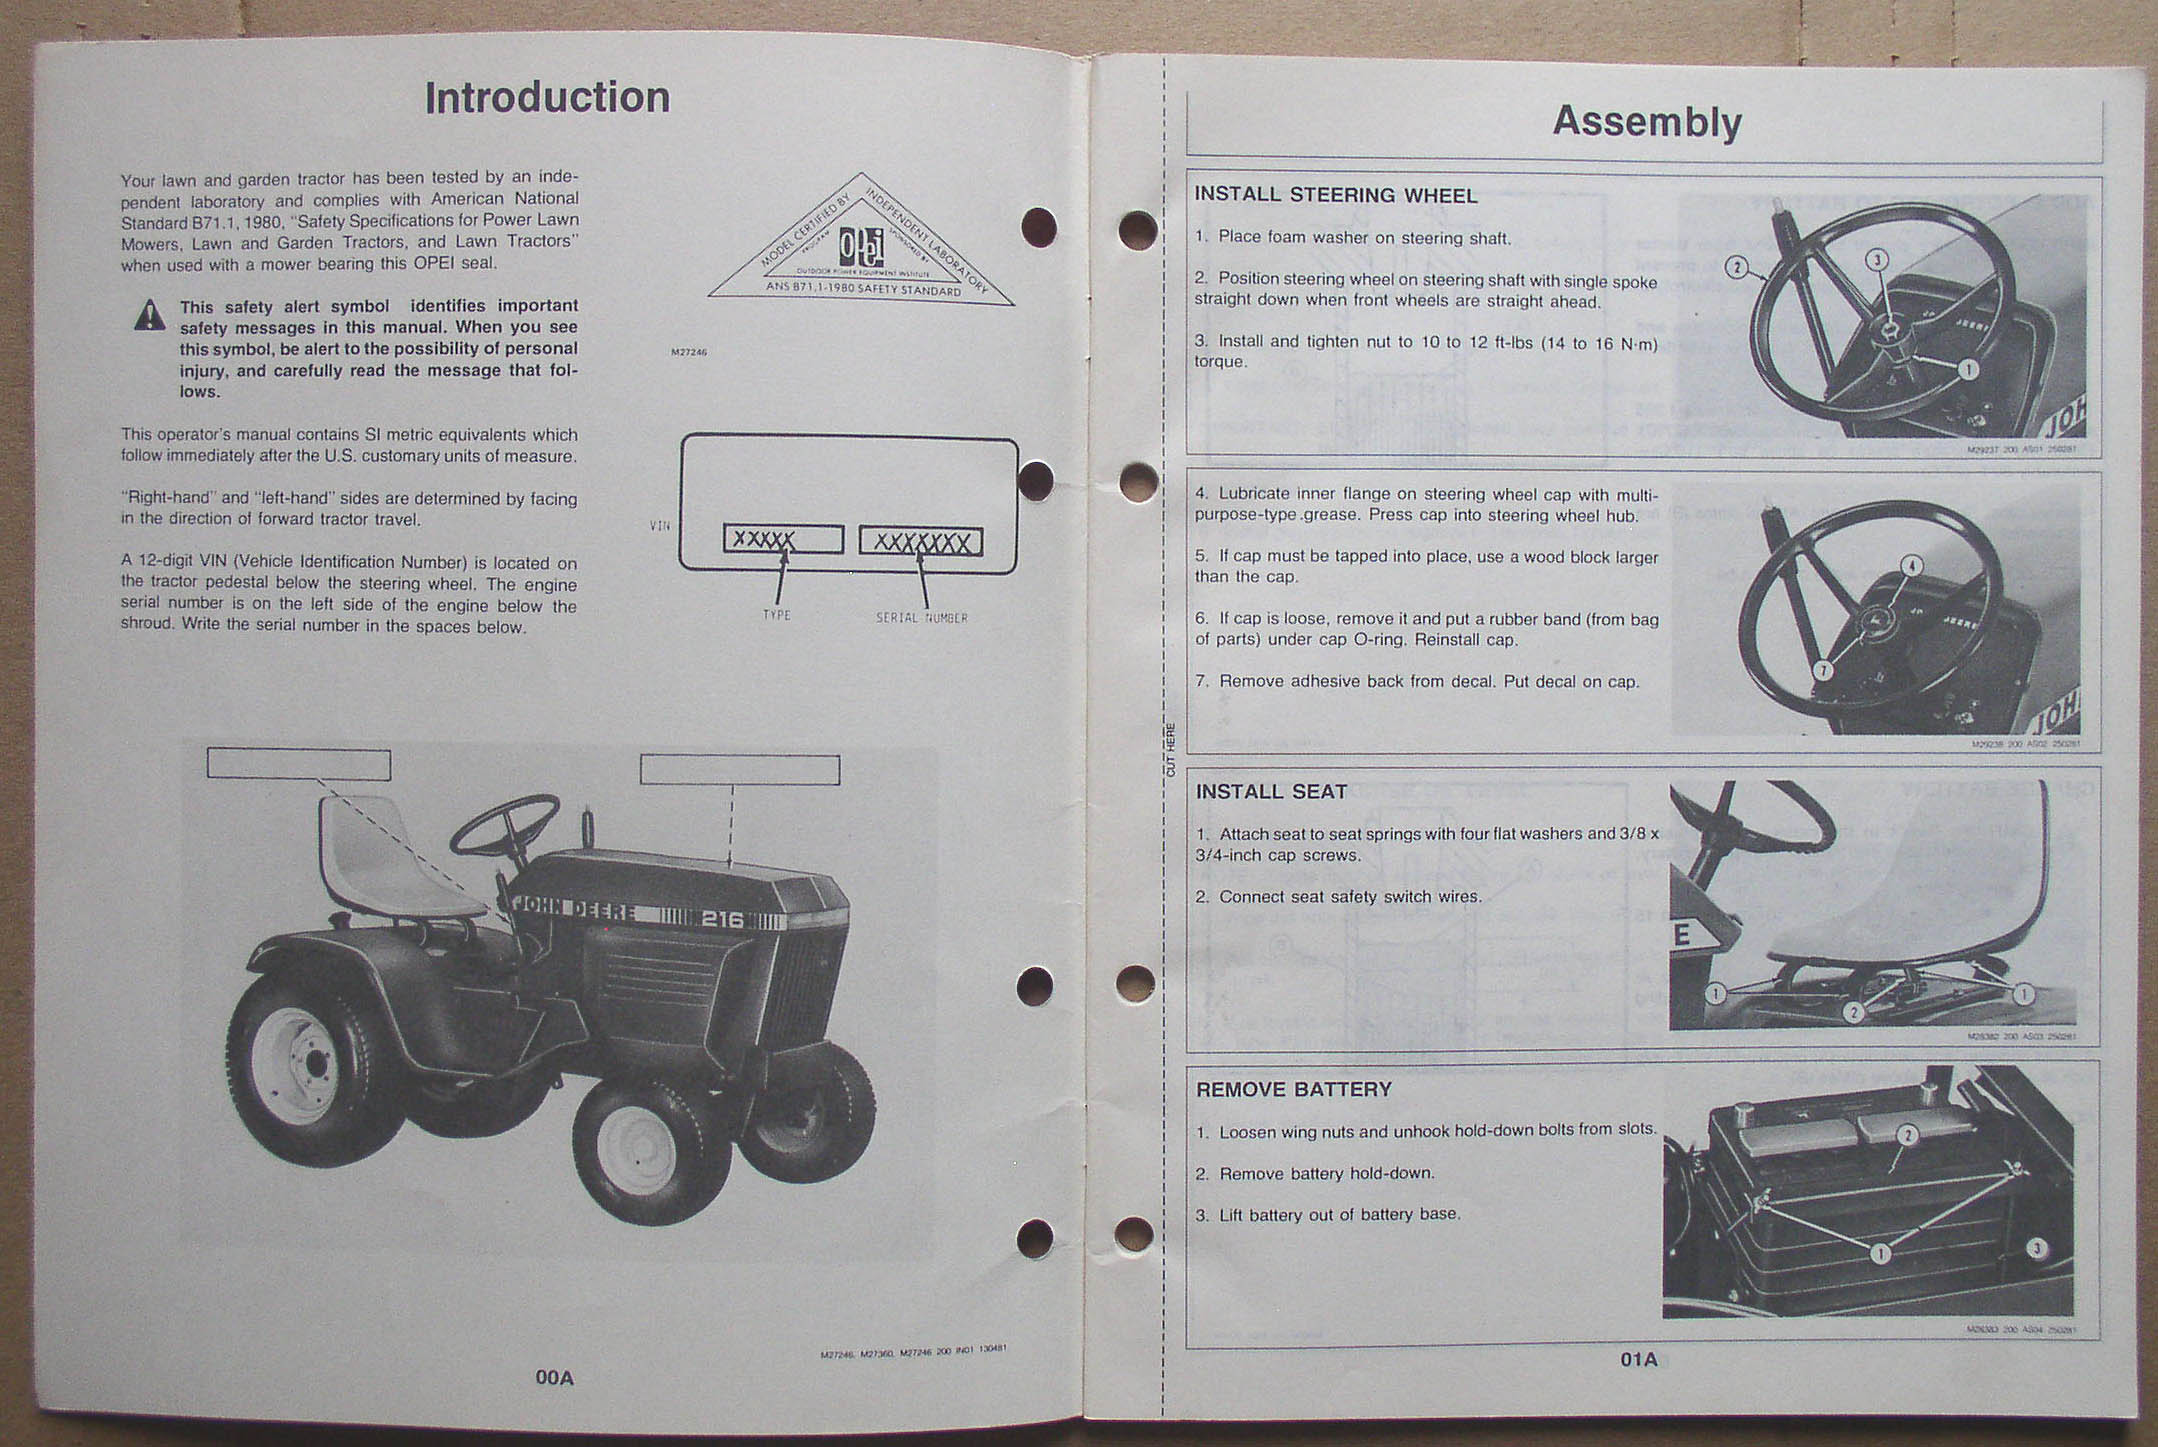 John Deere 210 212 214 216 Garden Tractor Operator's Manual1. Realized ...